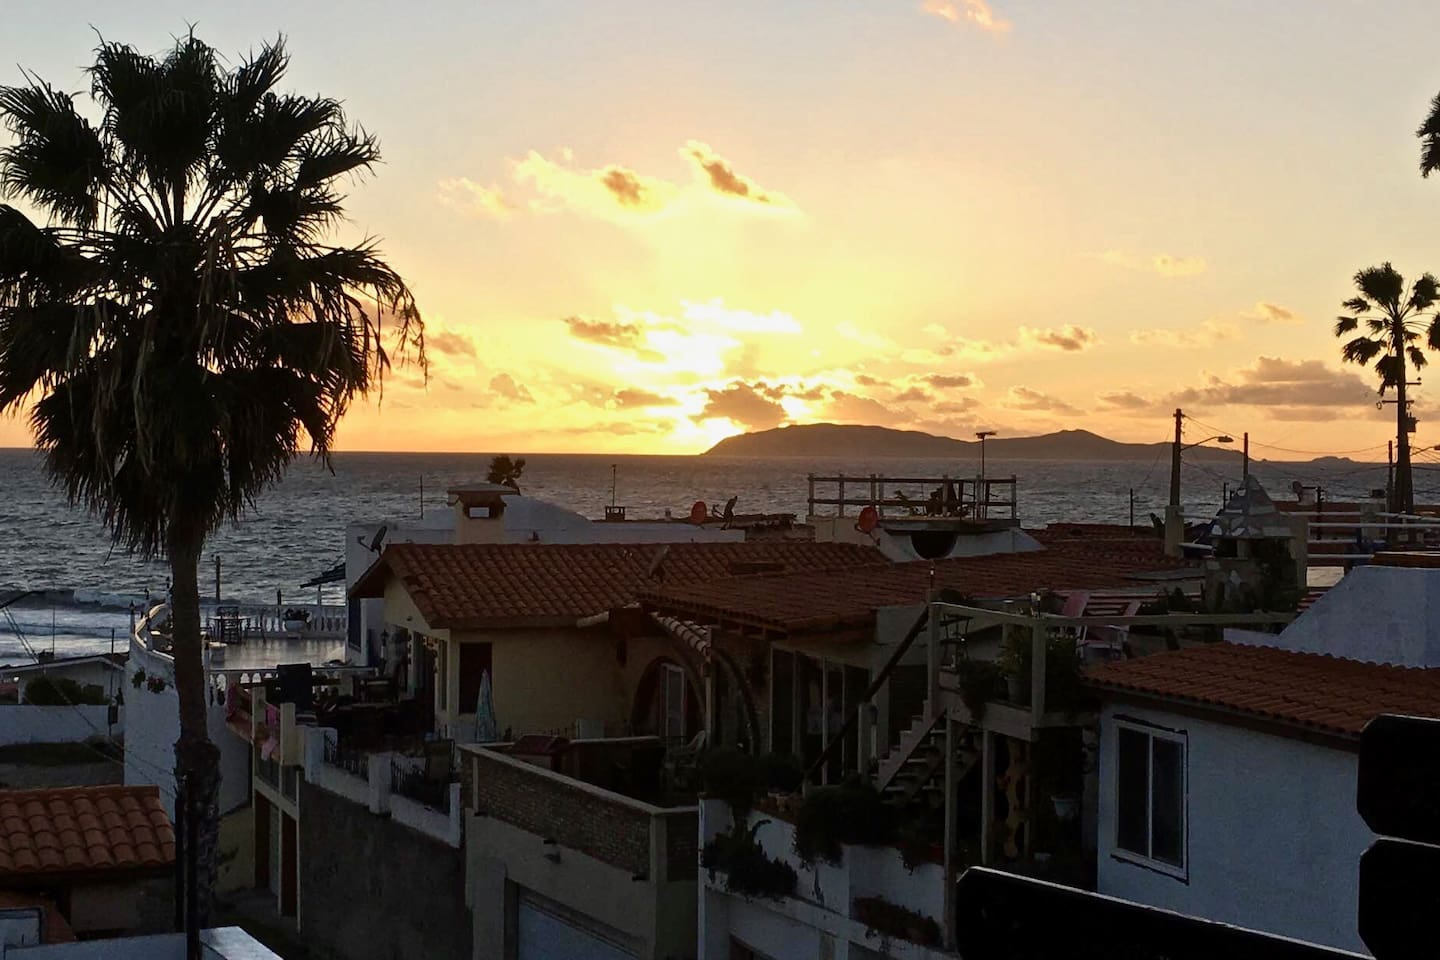 Amazing Baja Sunset from the Deck